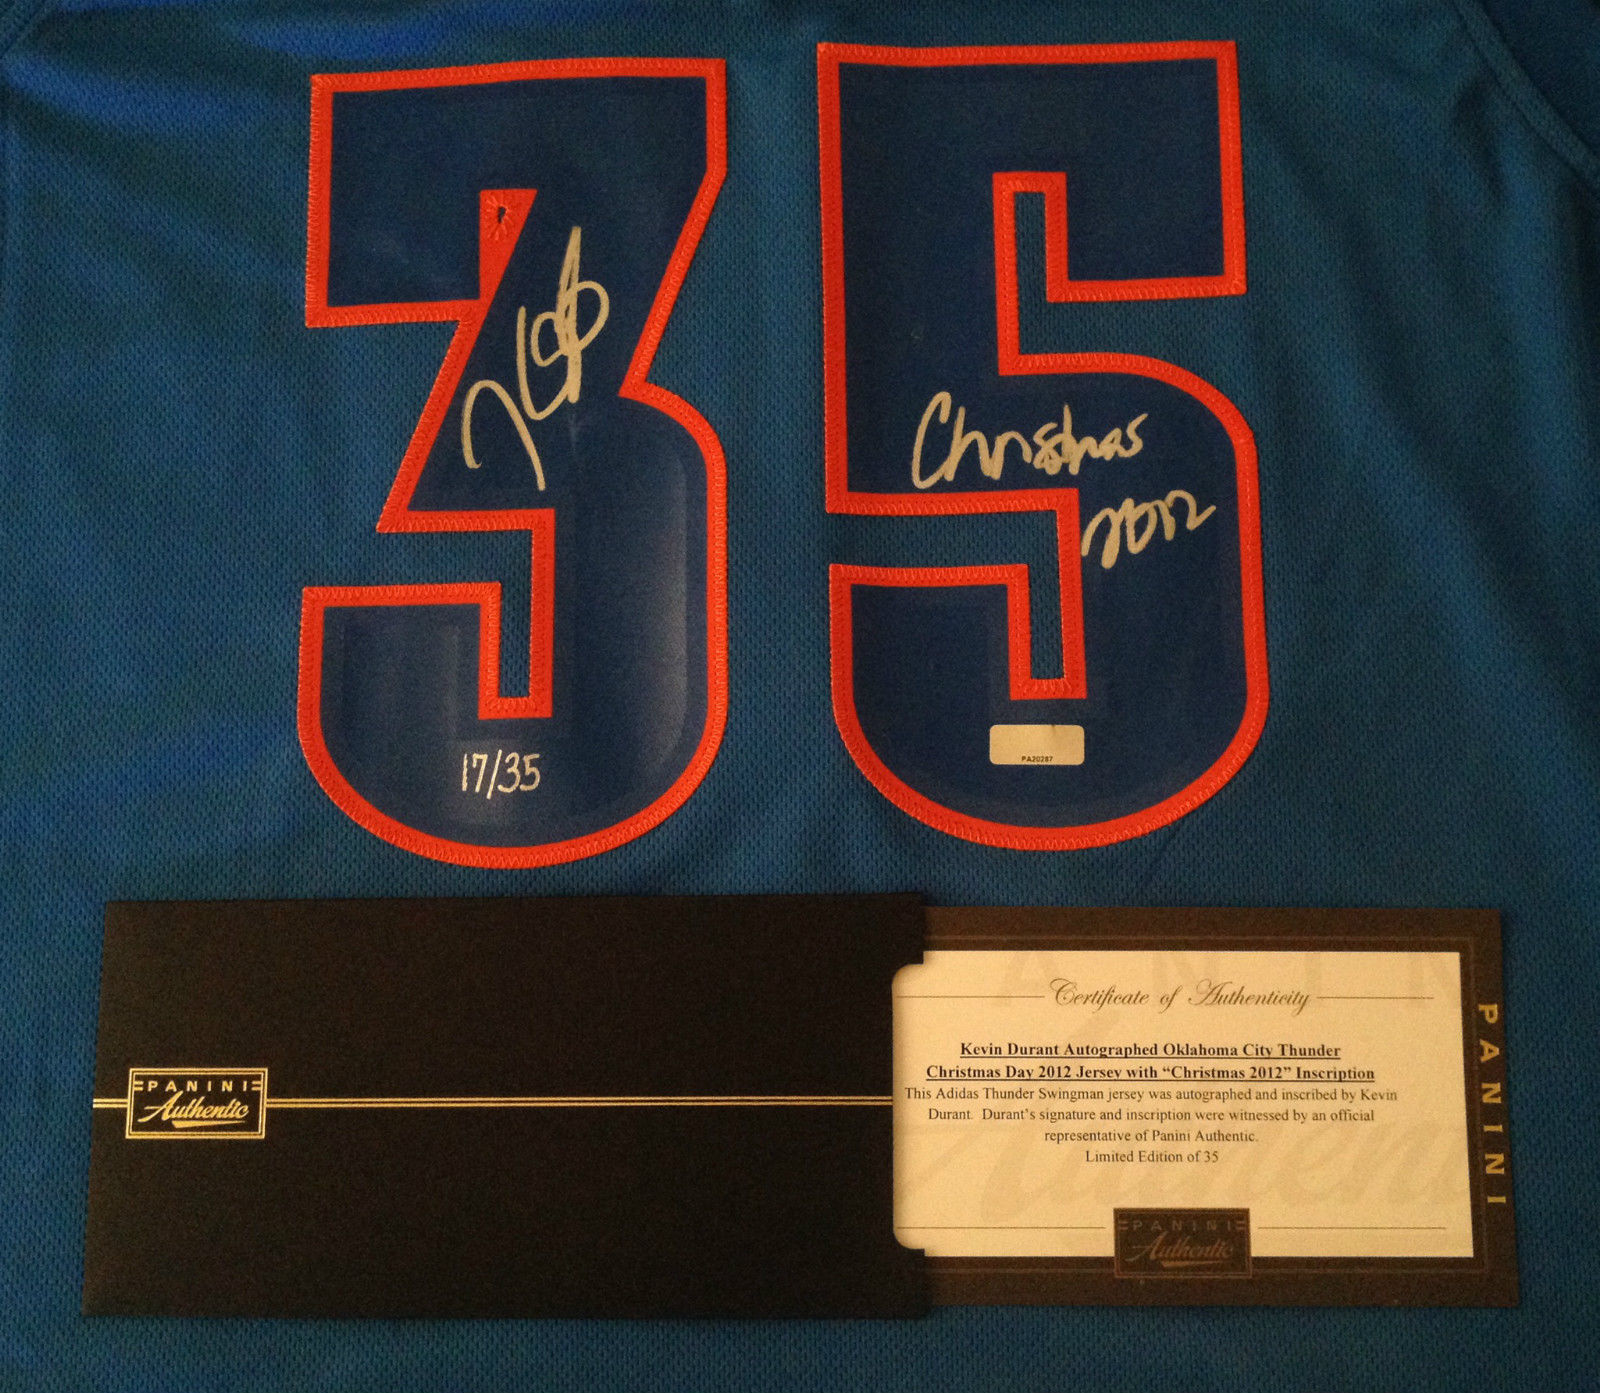 aab32a566 Kevin Durant Rookie Cards Checklist and Autographed Memorabilia Guide